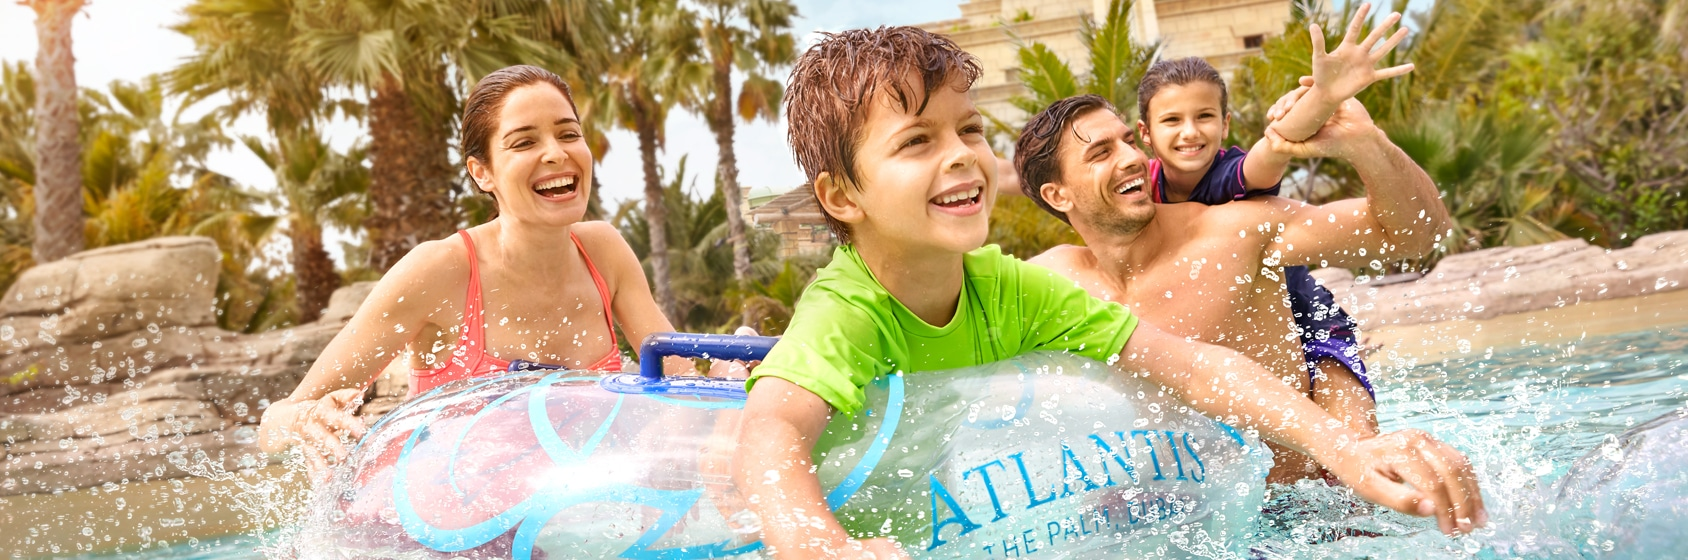 There is No Time like Summertime in Atlantis, The Palm!